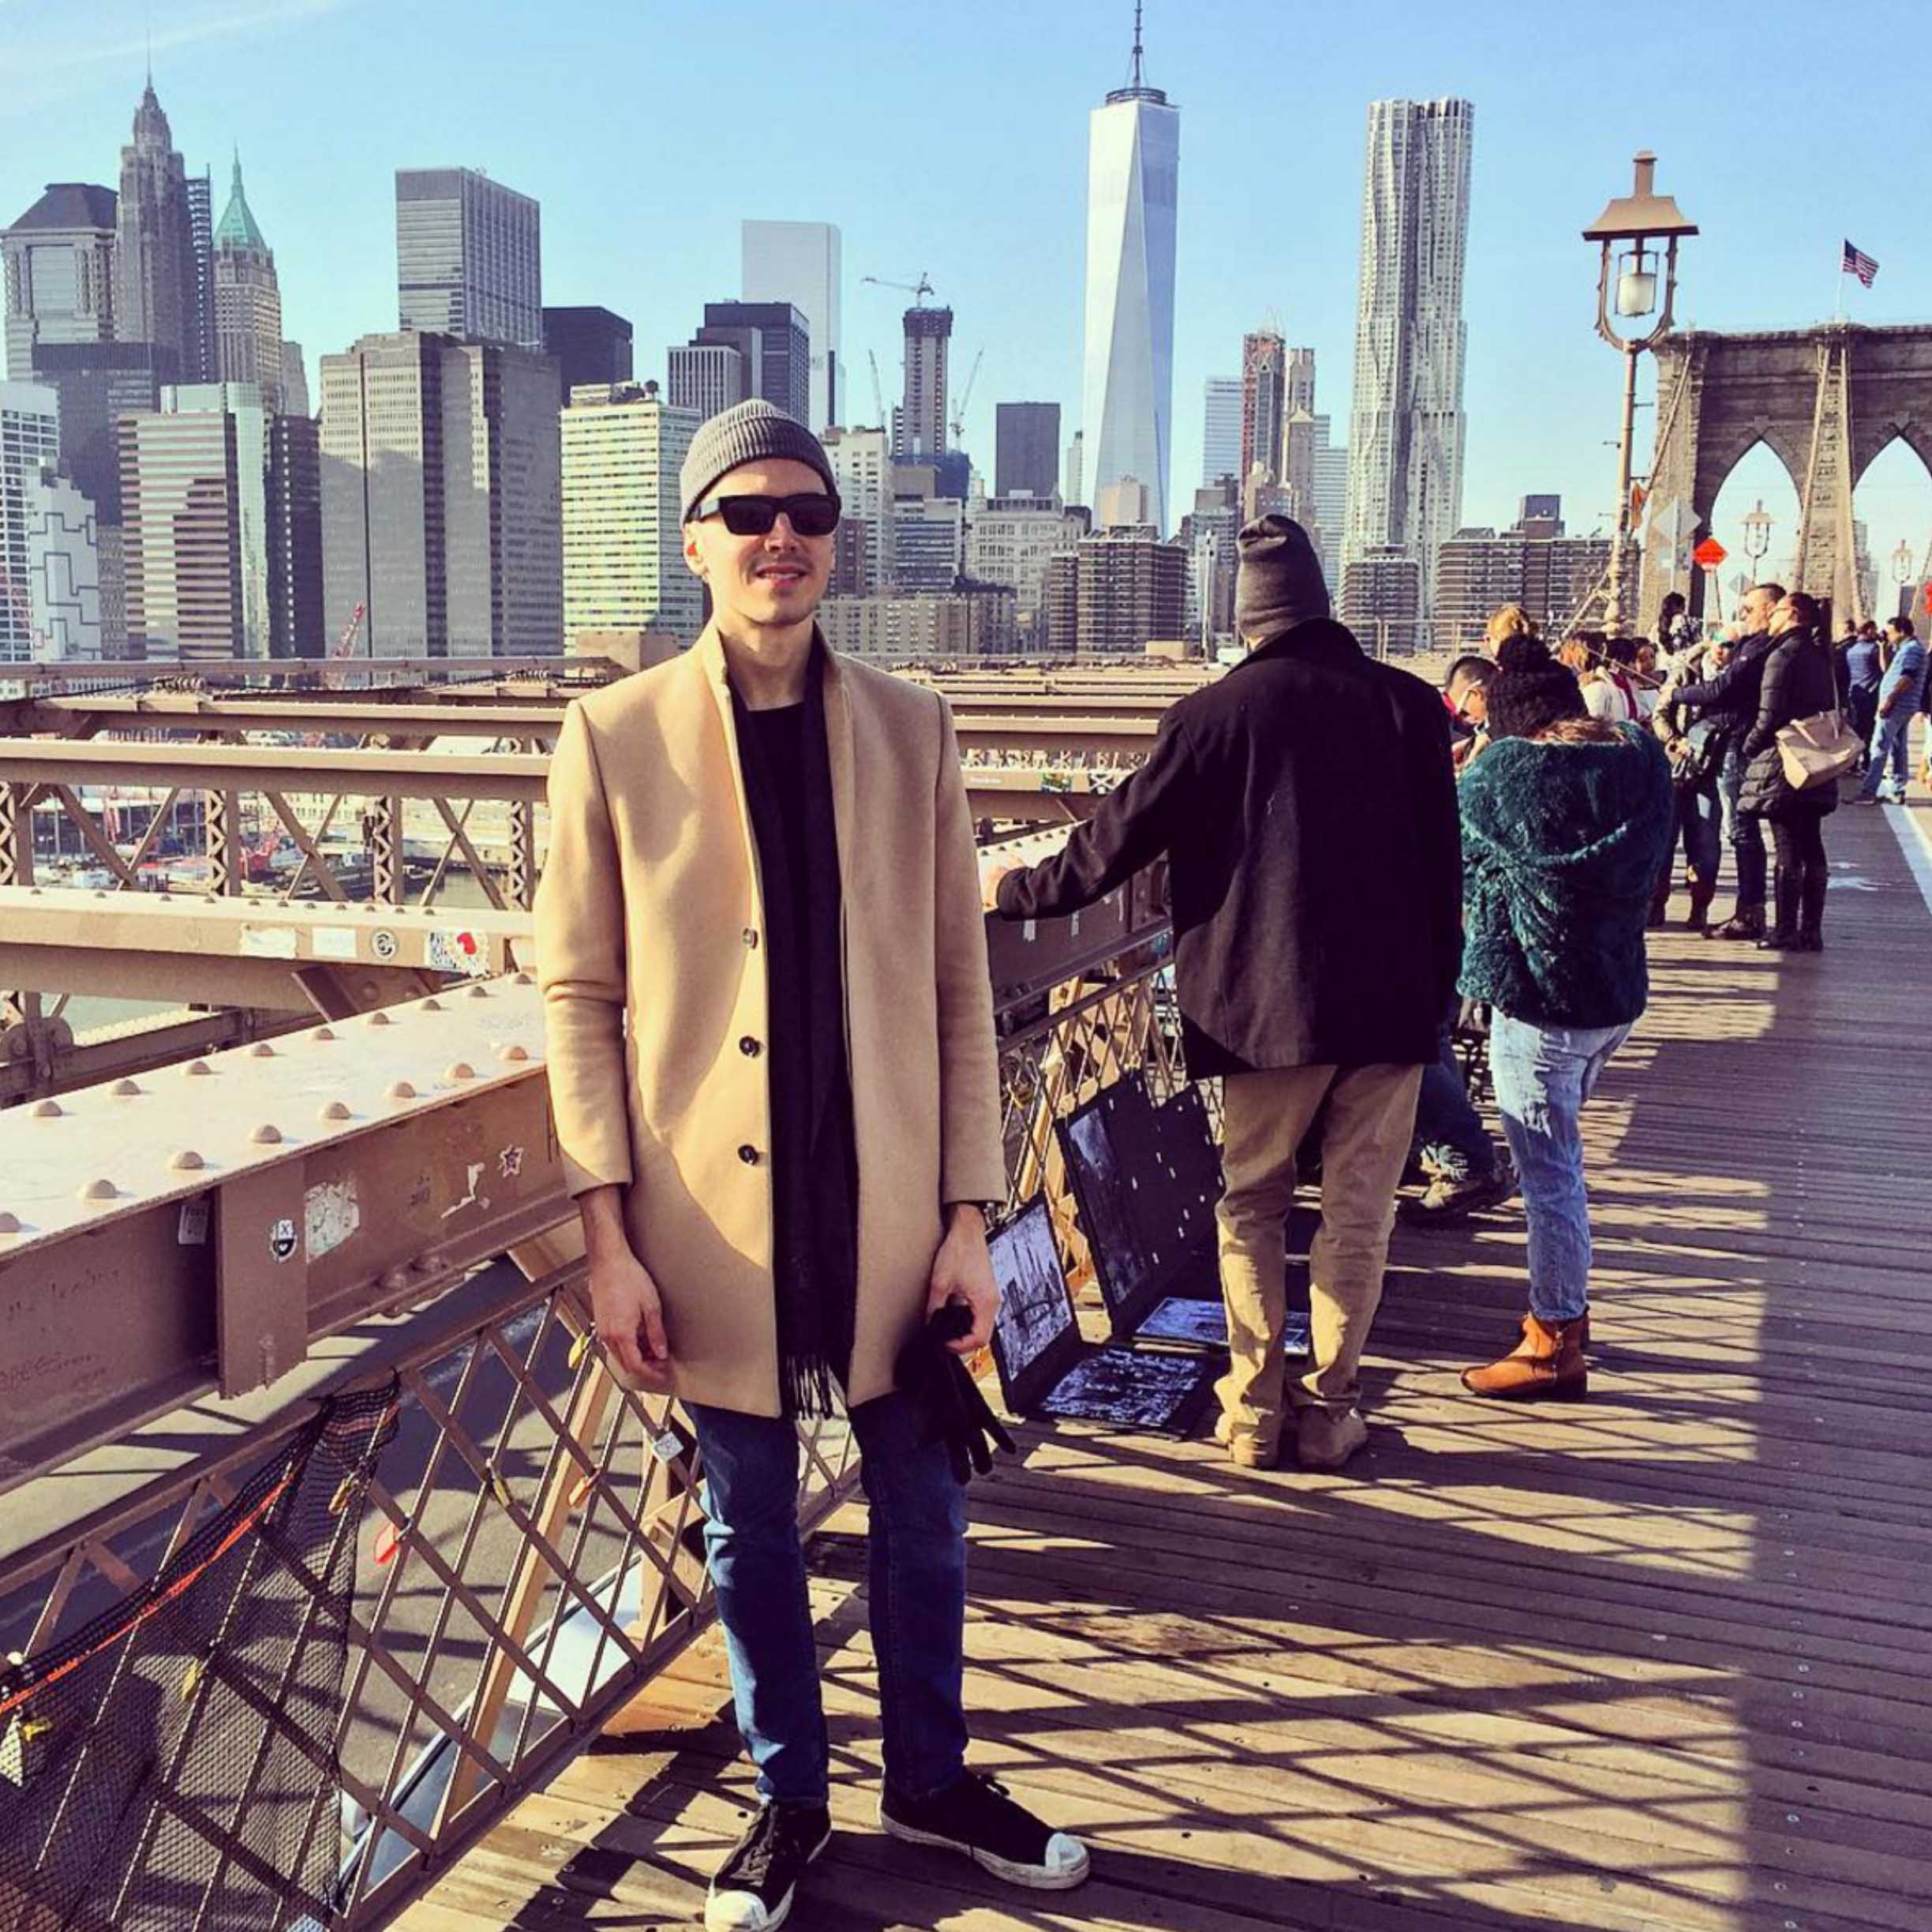 A stupid pose at the Brooklyn Bridge. Yep, a majority of Swedes and I love this city.